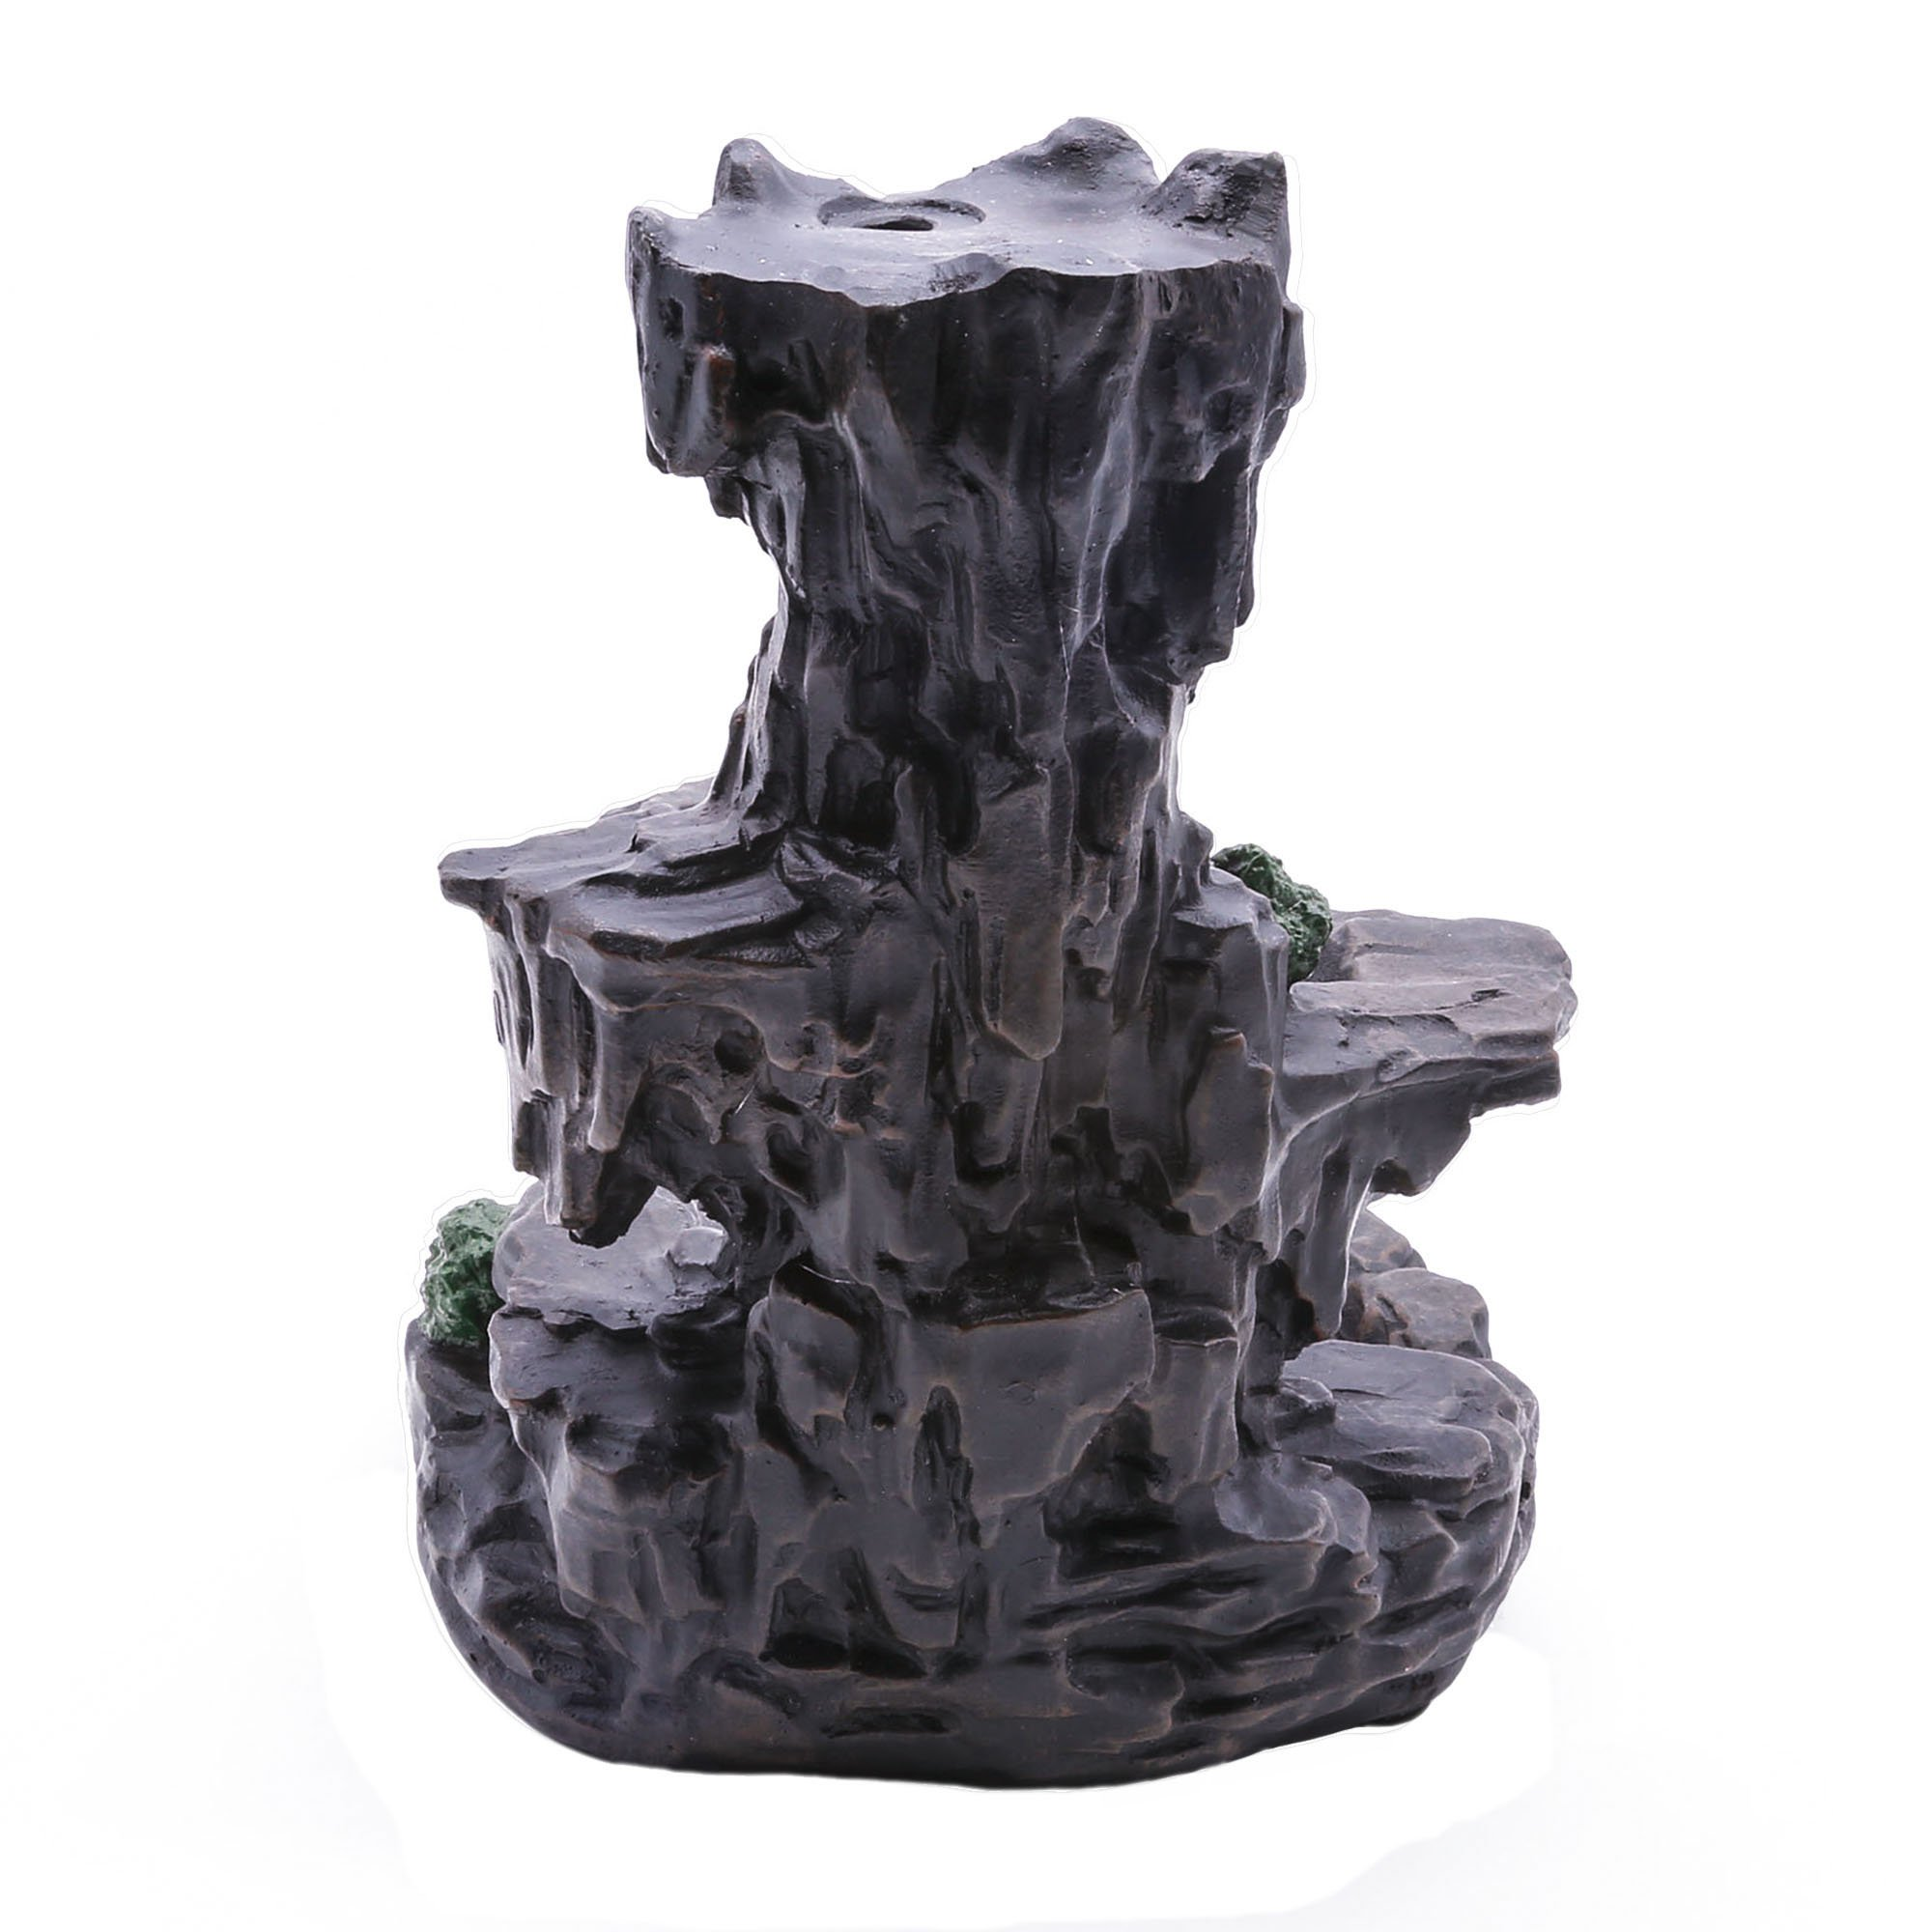 MAYMII Zen Garden Mountain Stream Backflow Handcrafted Resin Incense Holder Burner, Aromatherapy Furnace Diffuser for Home Decor by MAYMII (Image #5)